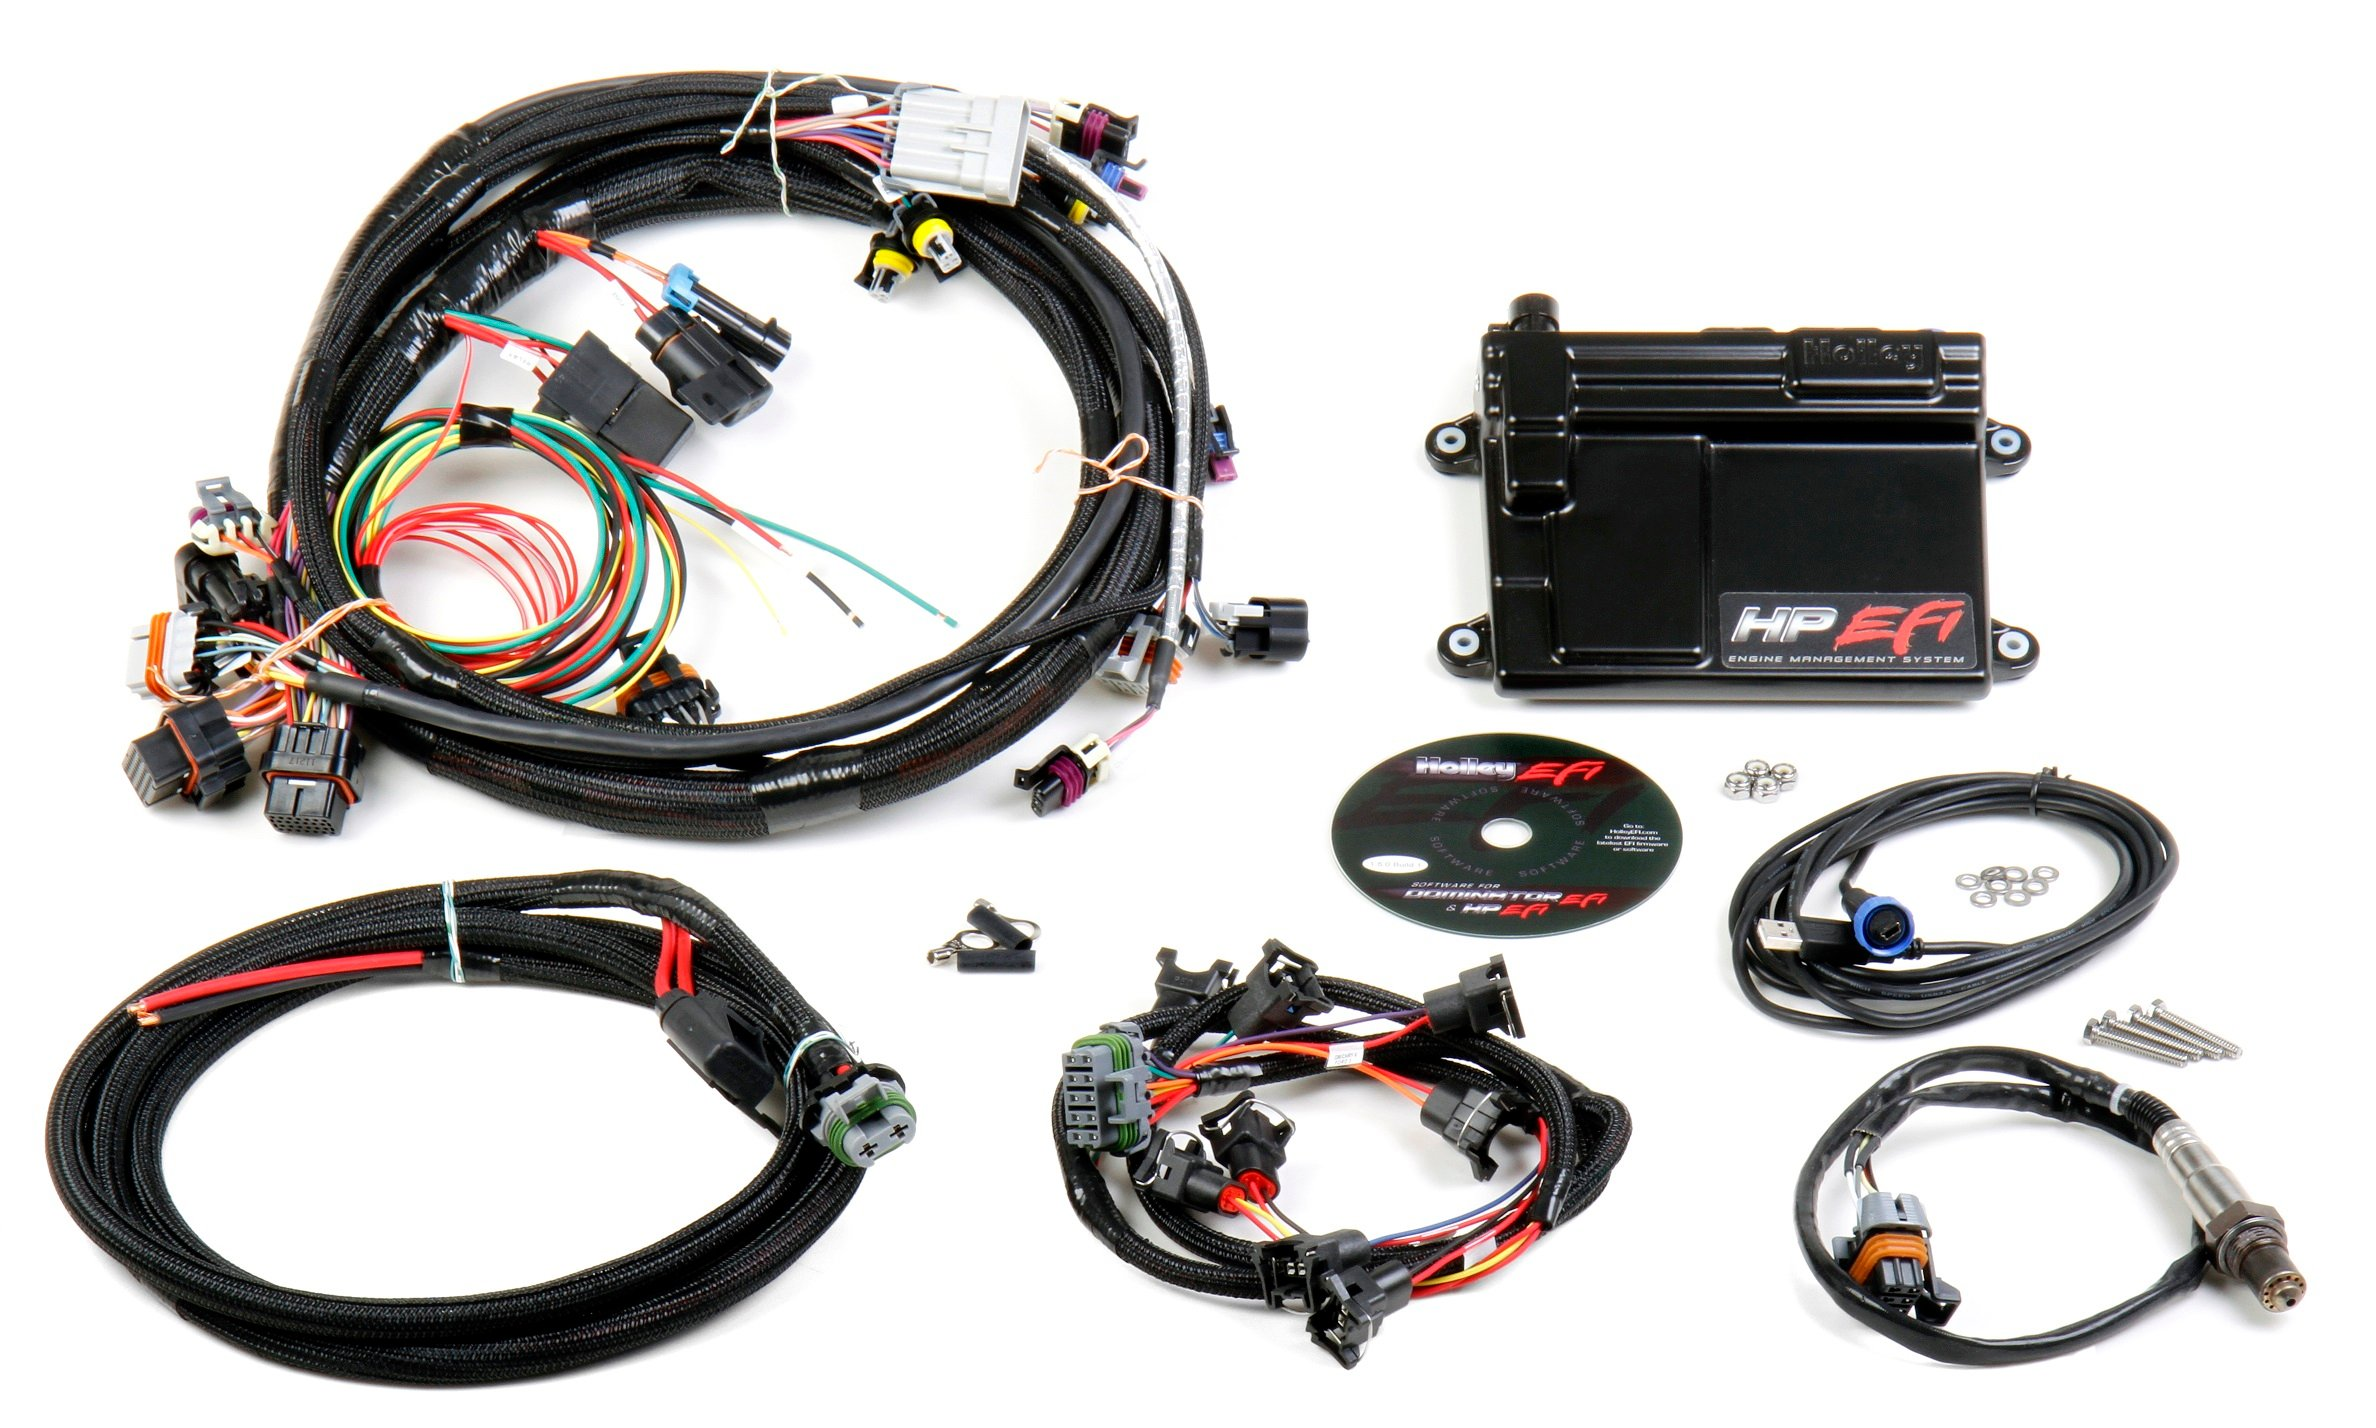 550 602 holley efi 550 602 hp efi ecu & harness kits holley ls wiring harness at bakdesigns.co